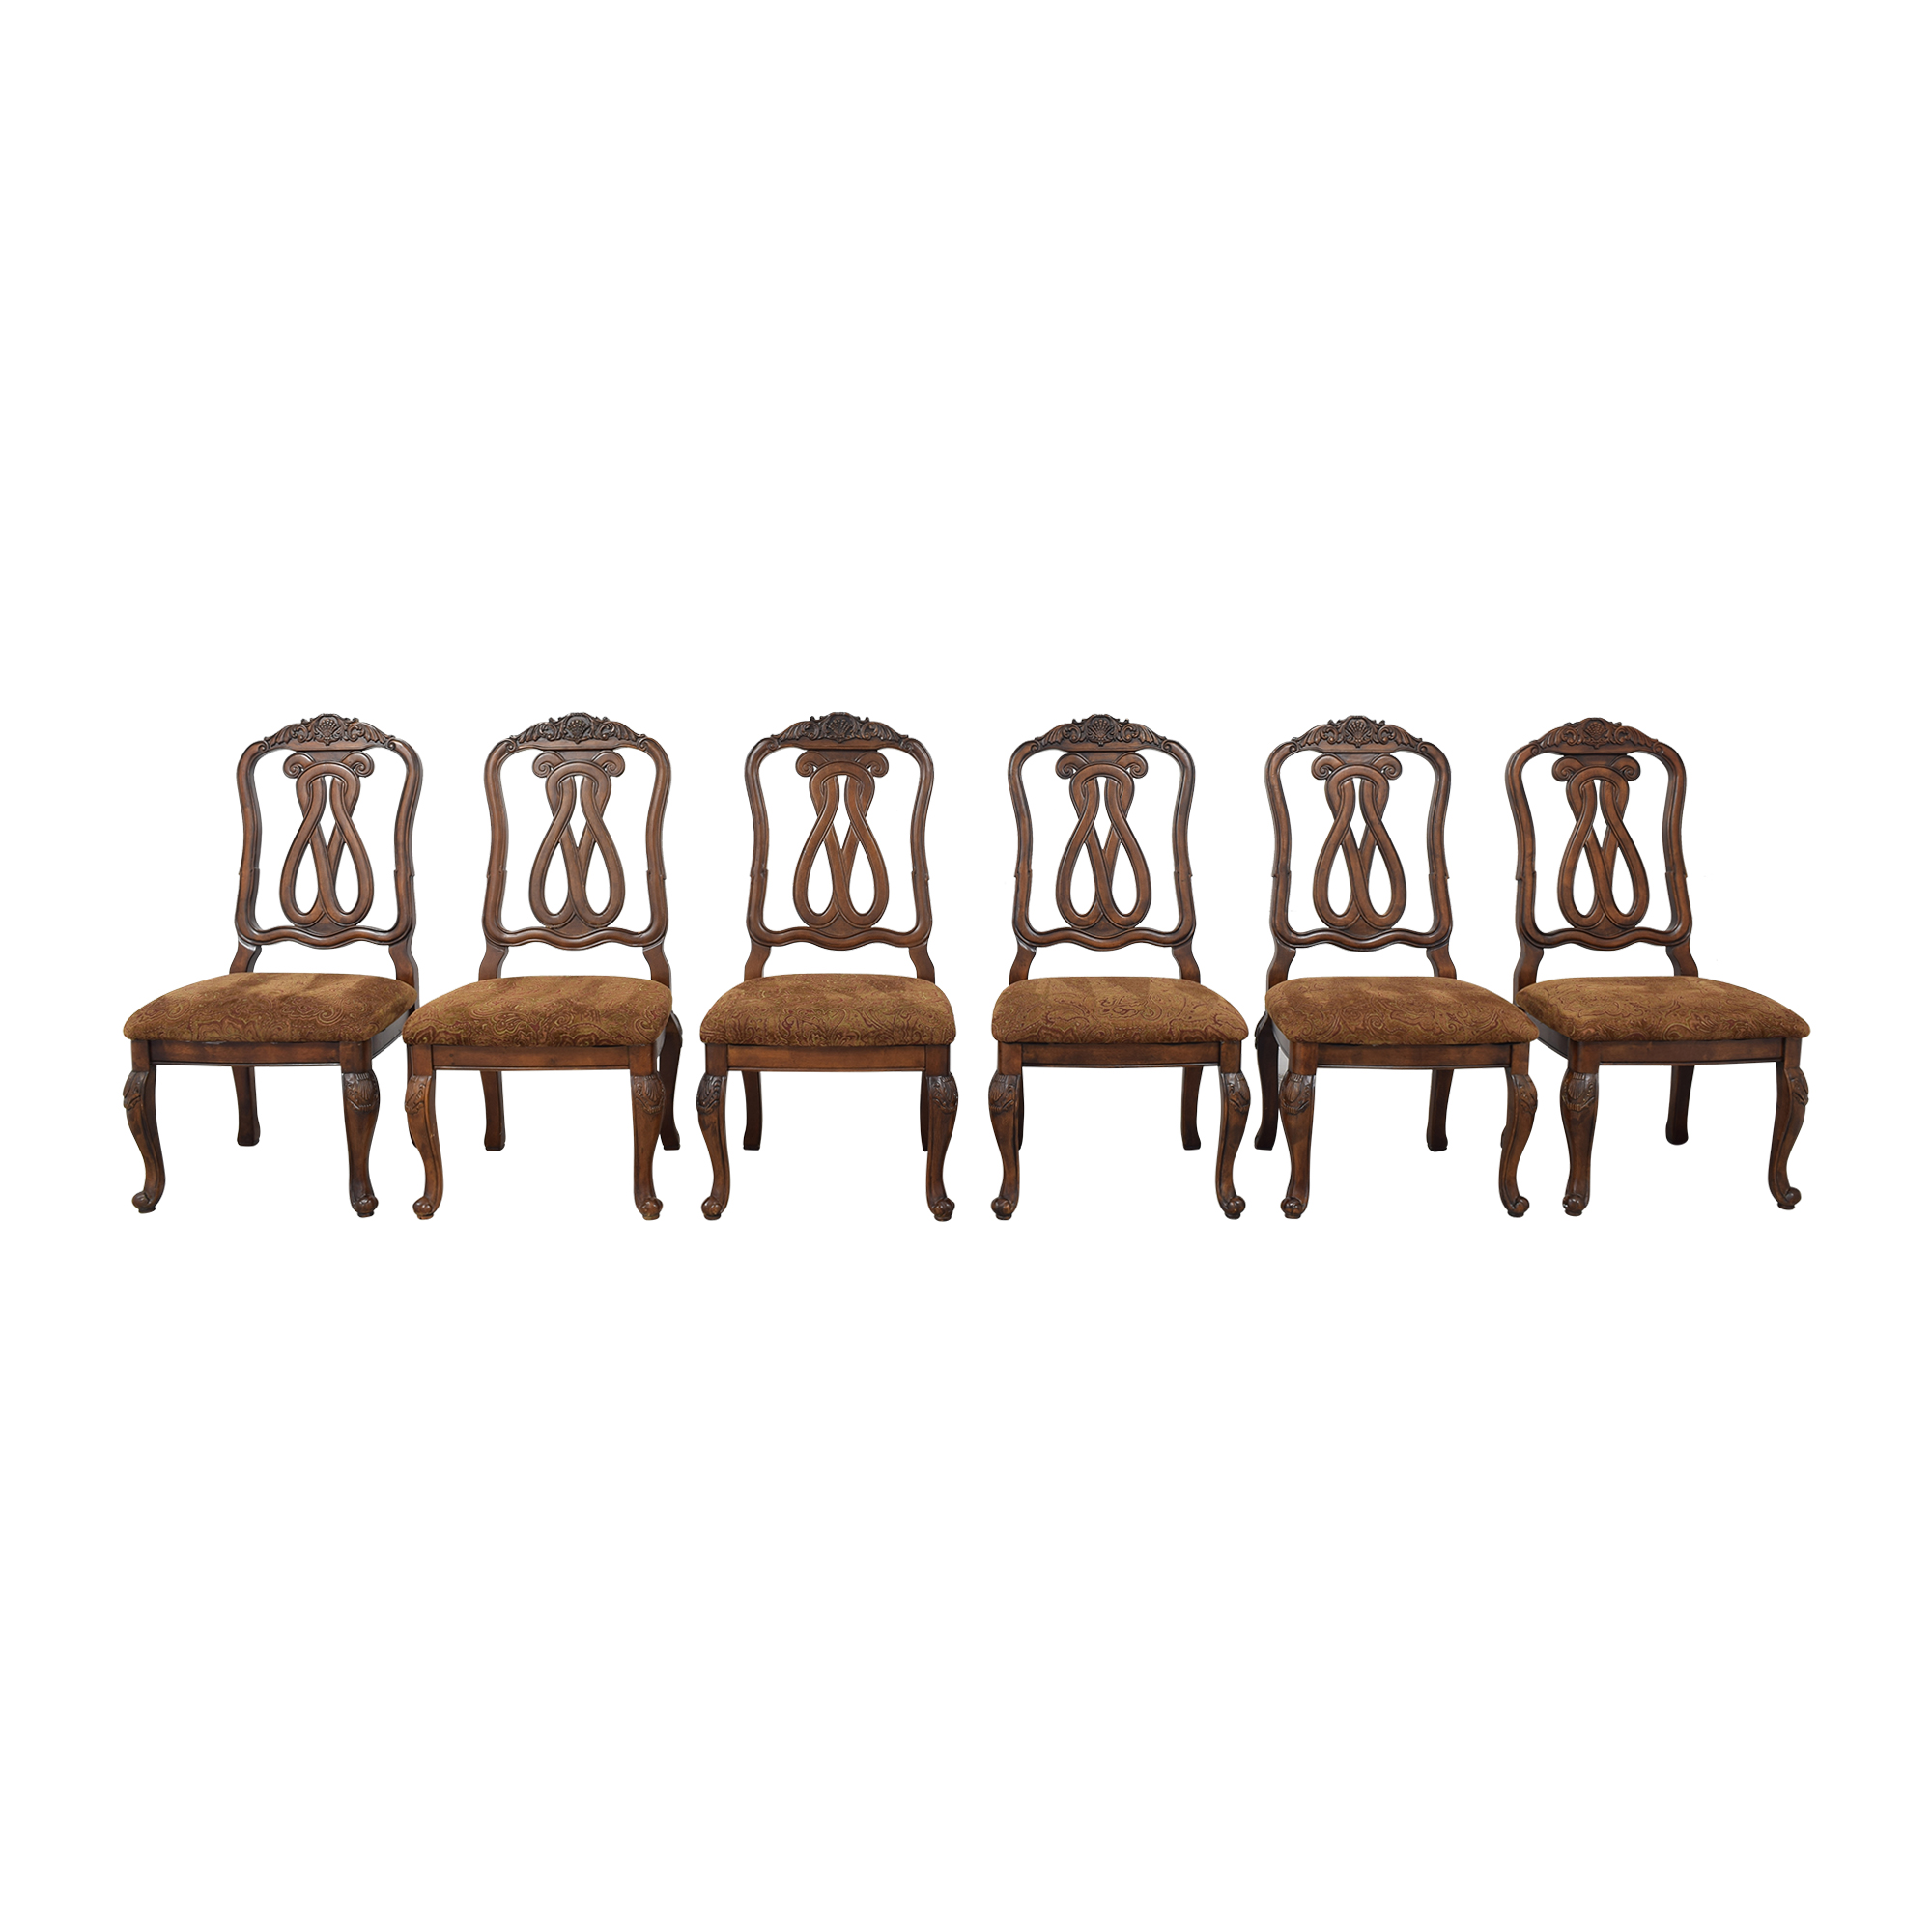 Ashley Furniture Ashley Furniture North Shore Dining Side Chairs coupon